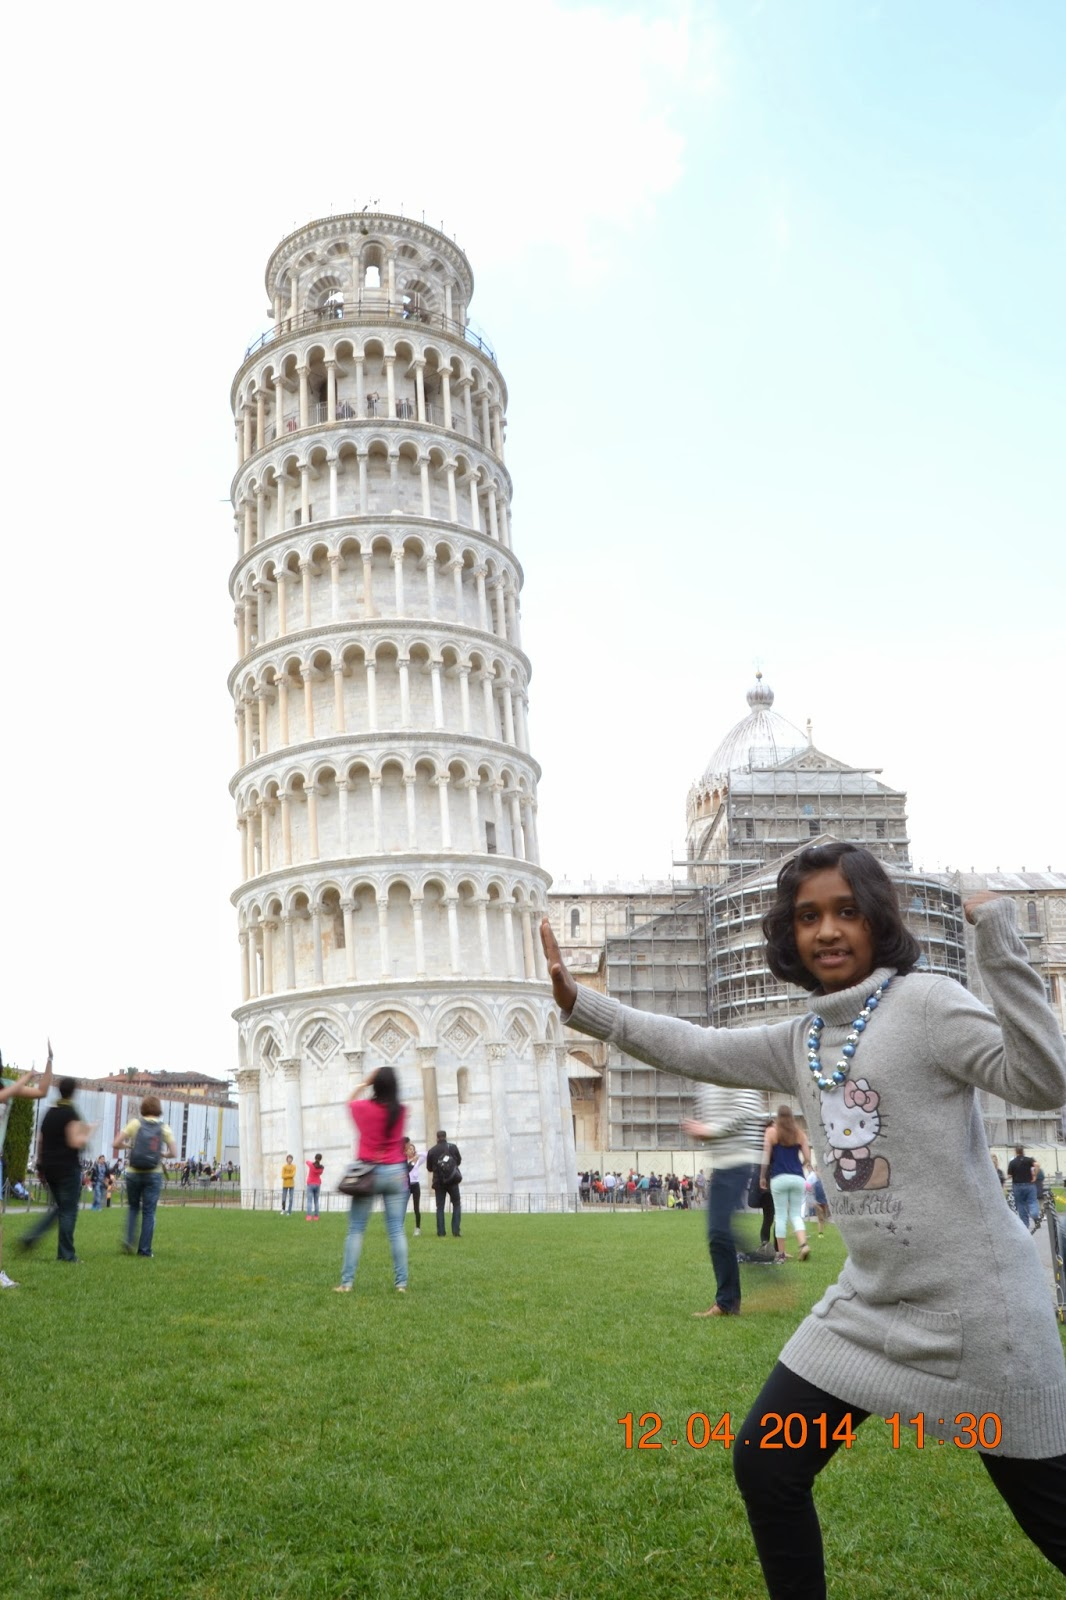 Photoshoot of Leaning Tower of Pisa